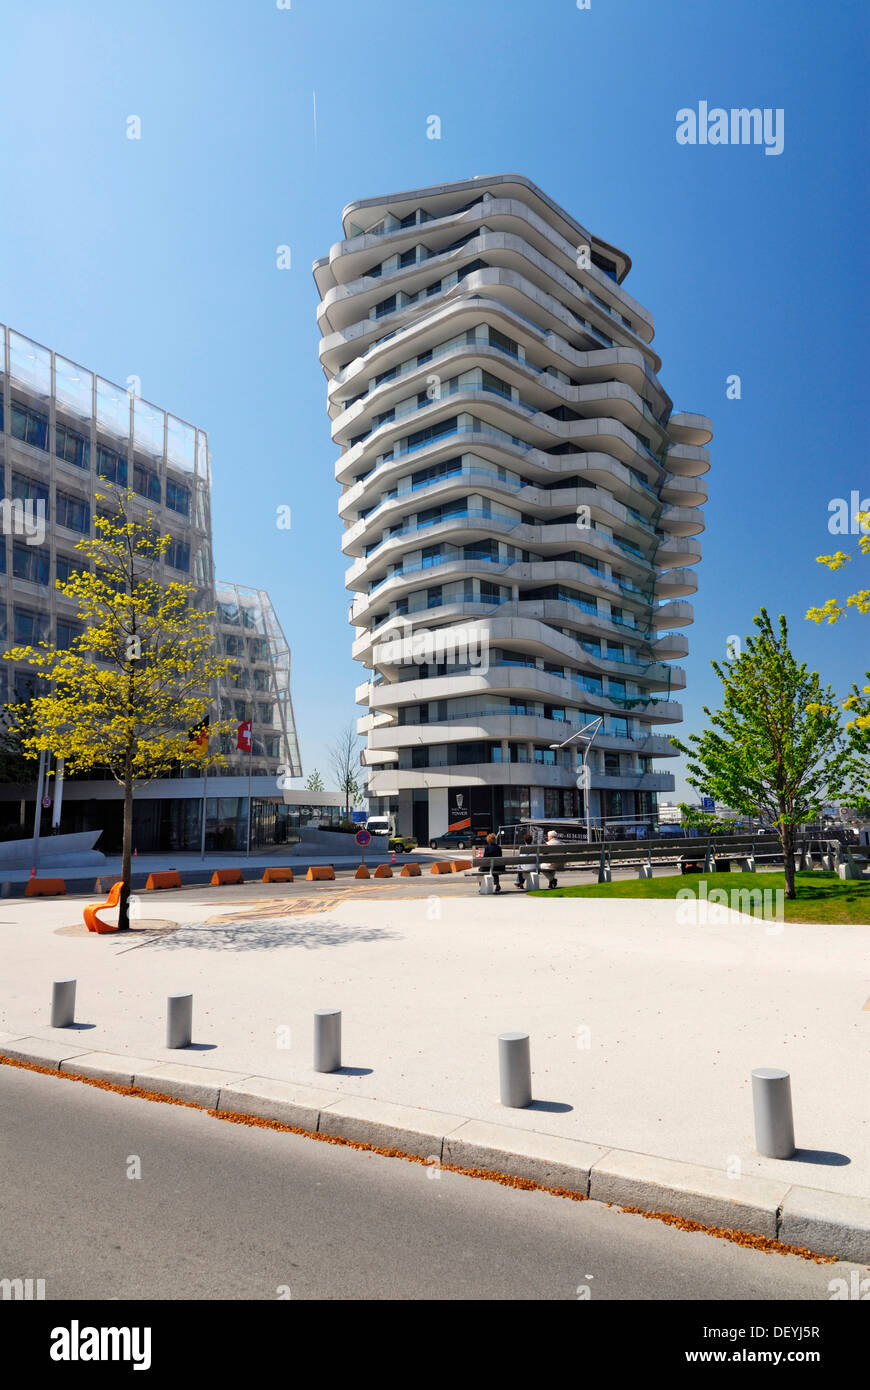 Marco Polo Tower The Apartment Building Marco-polo-tower, Strandkai Quay, Hafencity Stock Photo - Alamy